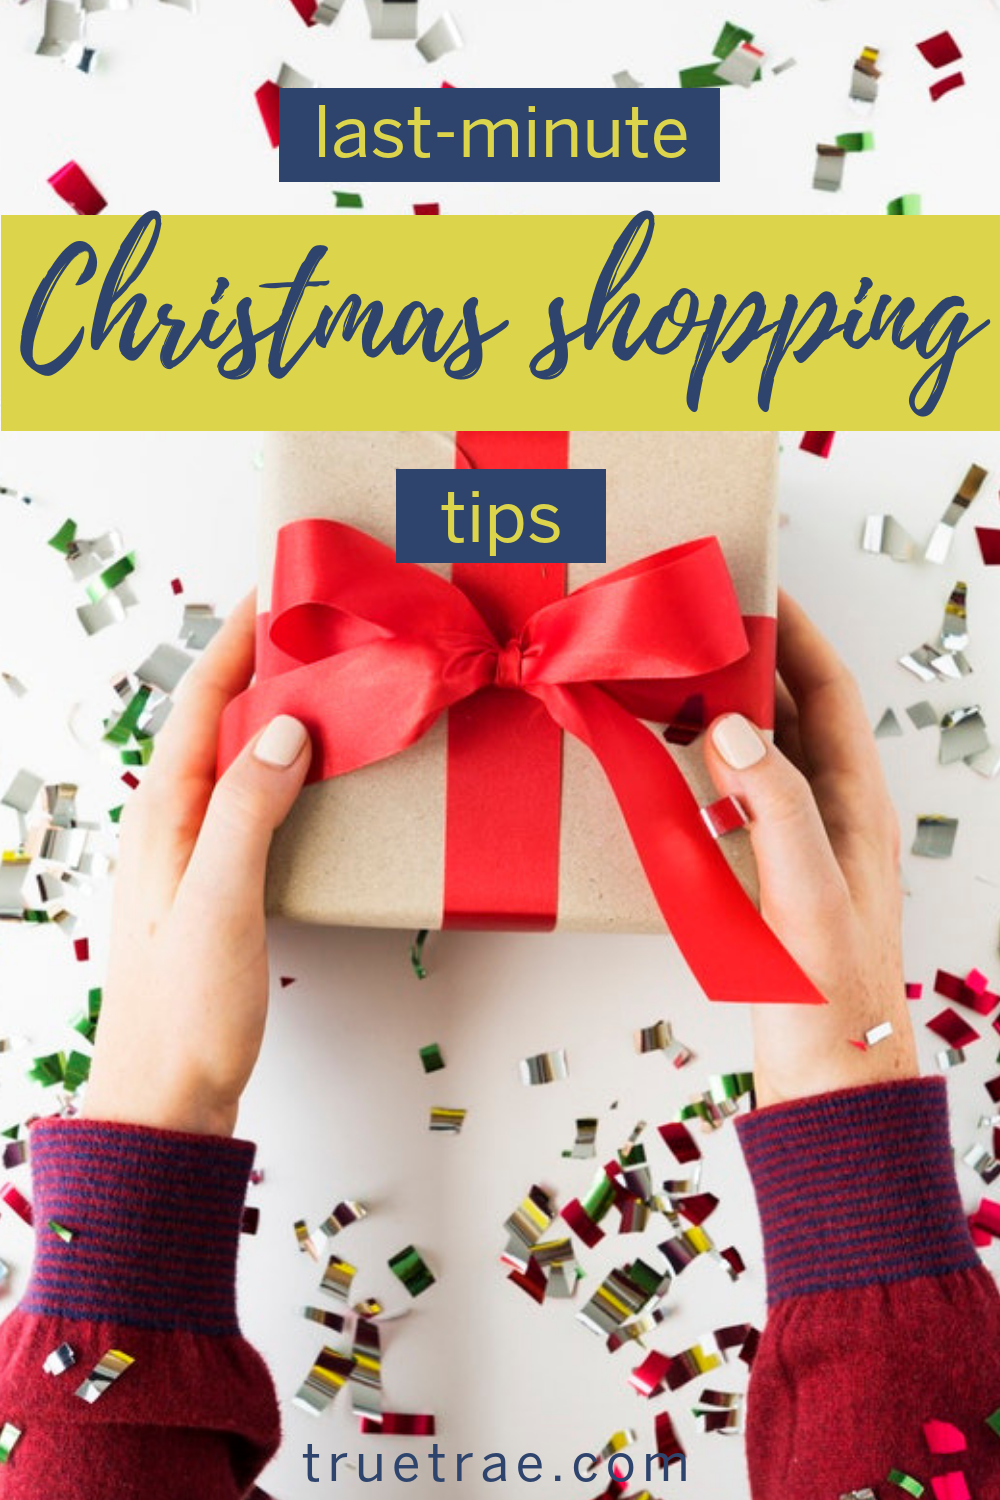 Christmas, if you celebrate, is right around the corner. That means procrastinators need to get their last-minute Christmas shopping on! #lastminutegifts #christmasgifts #lastminutetips #Christmasshopping